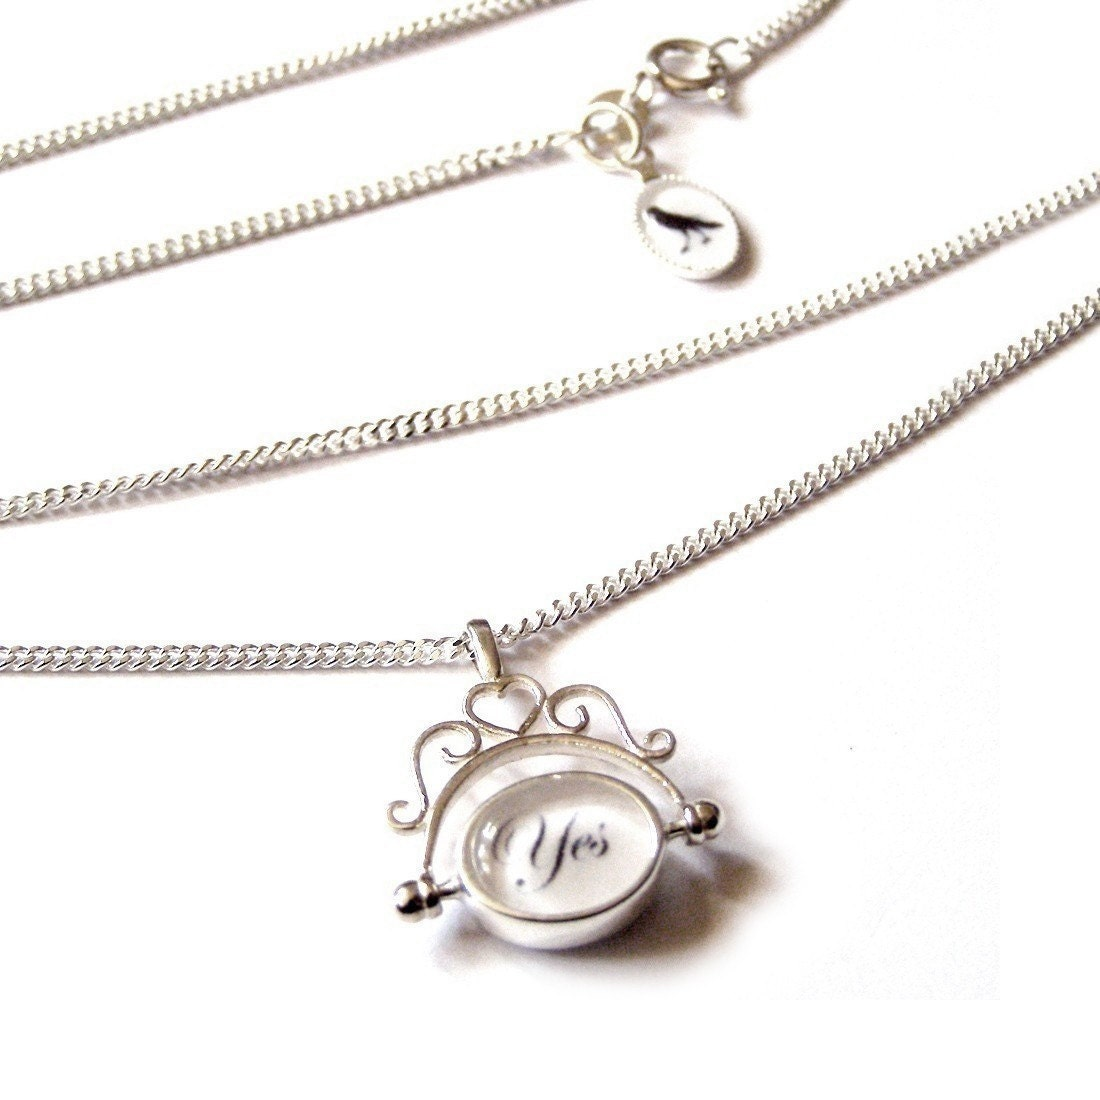 The Original Decision Maker - SOLID SILVER heirloom NECKLACE by adorapop